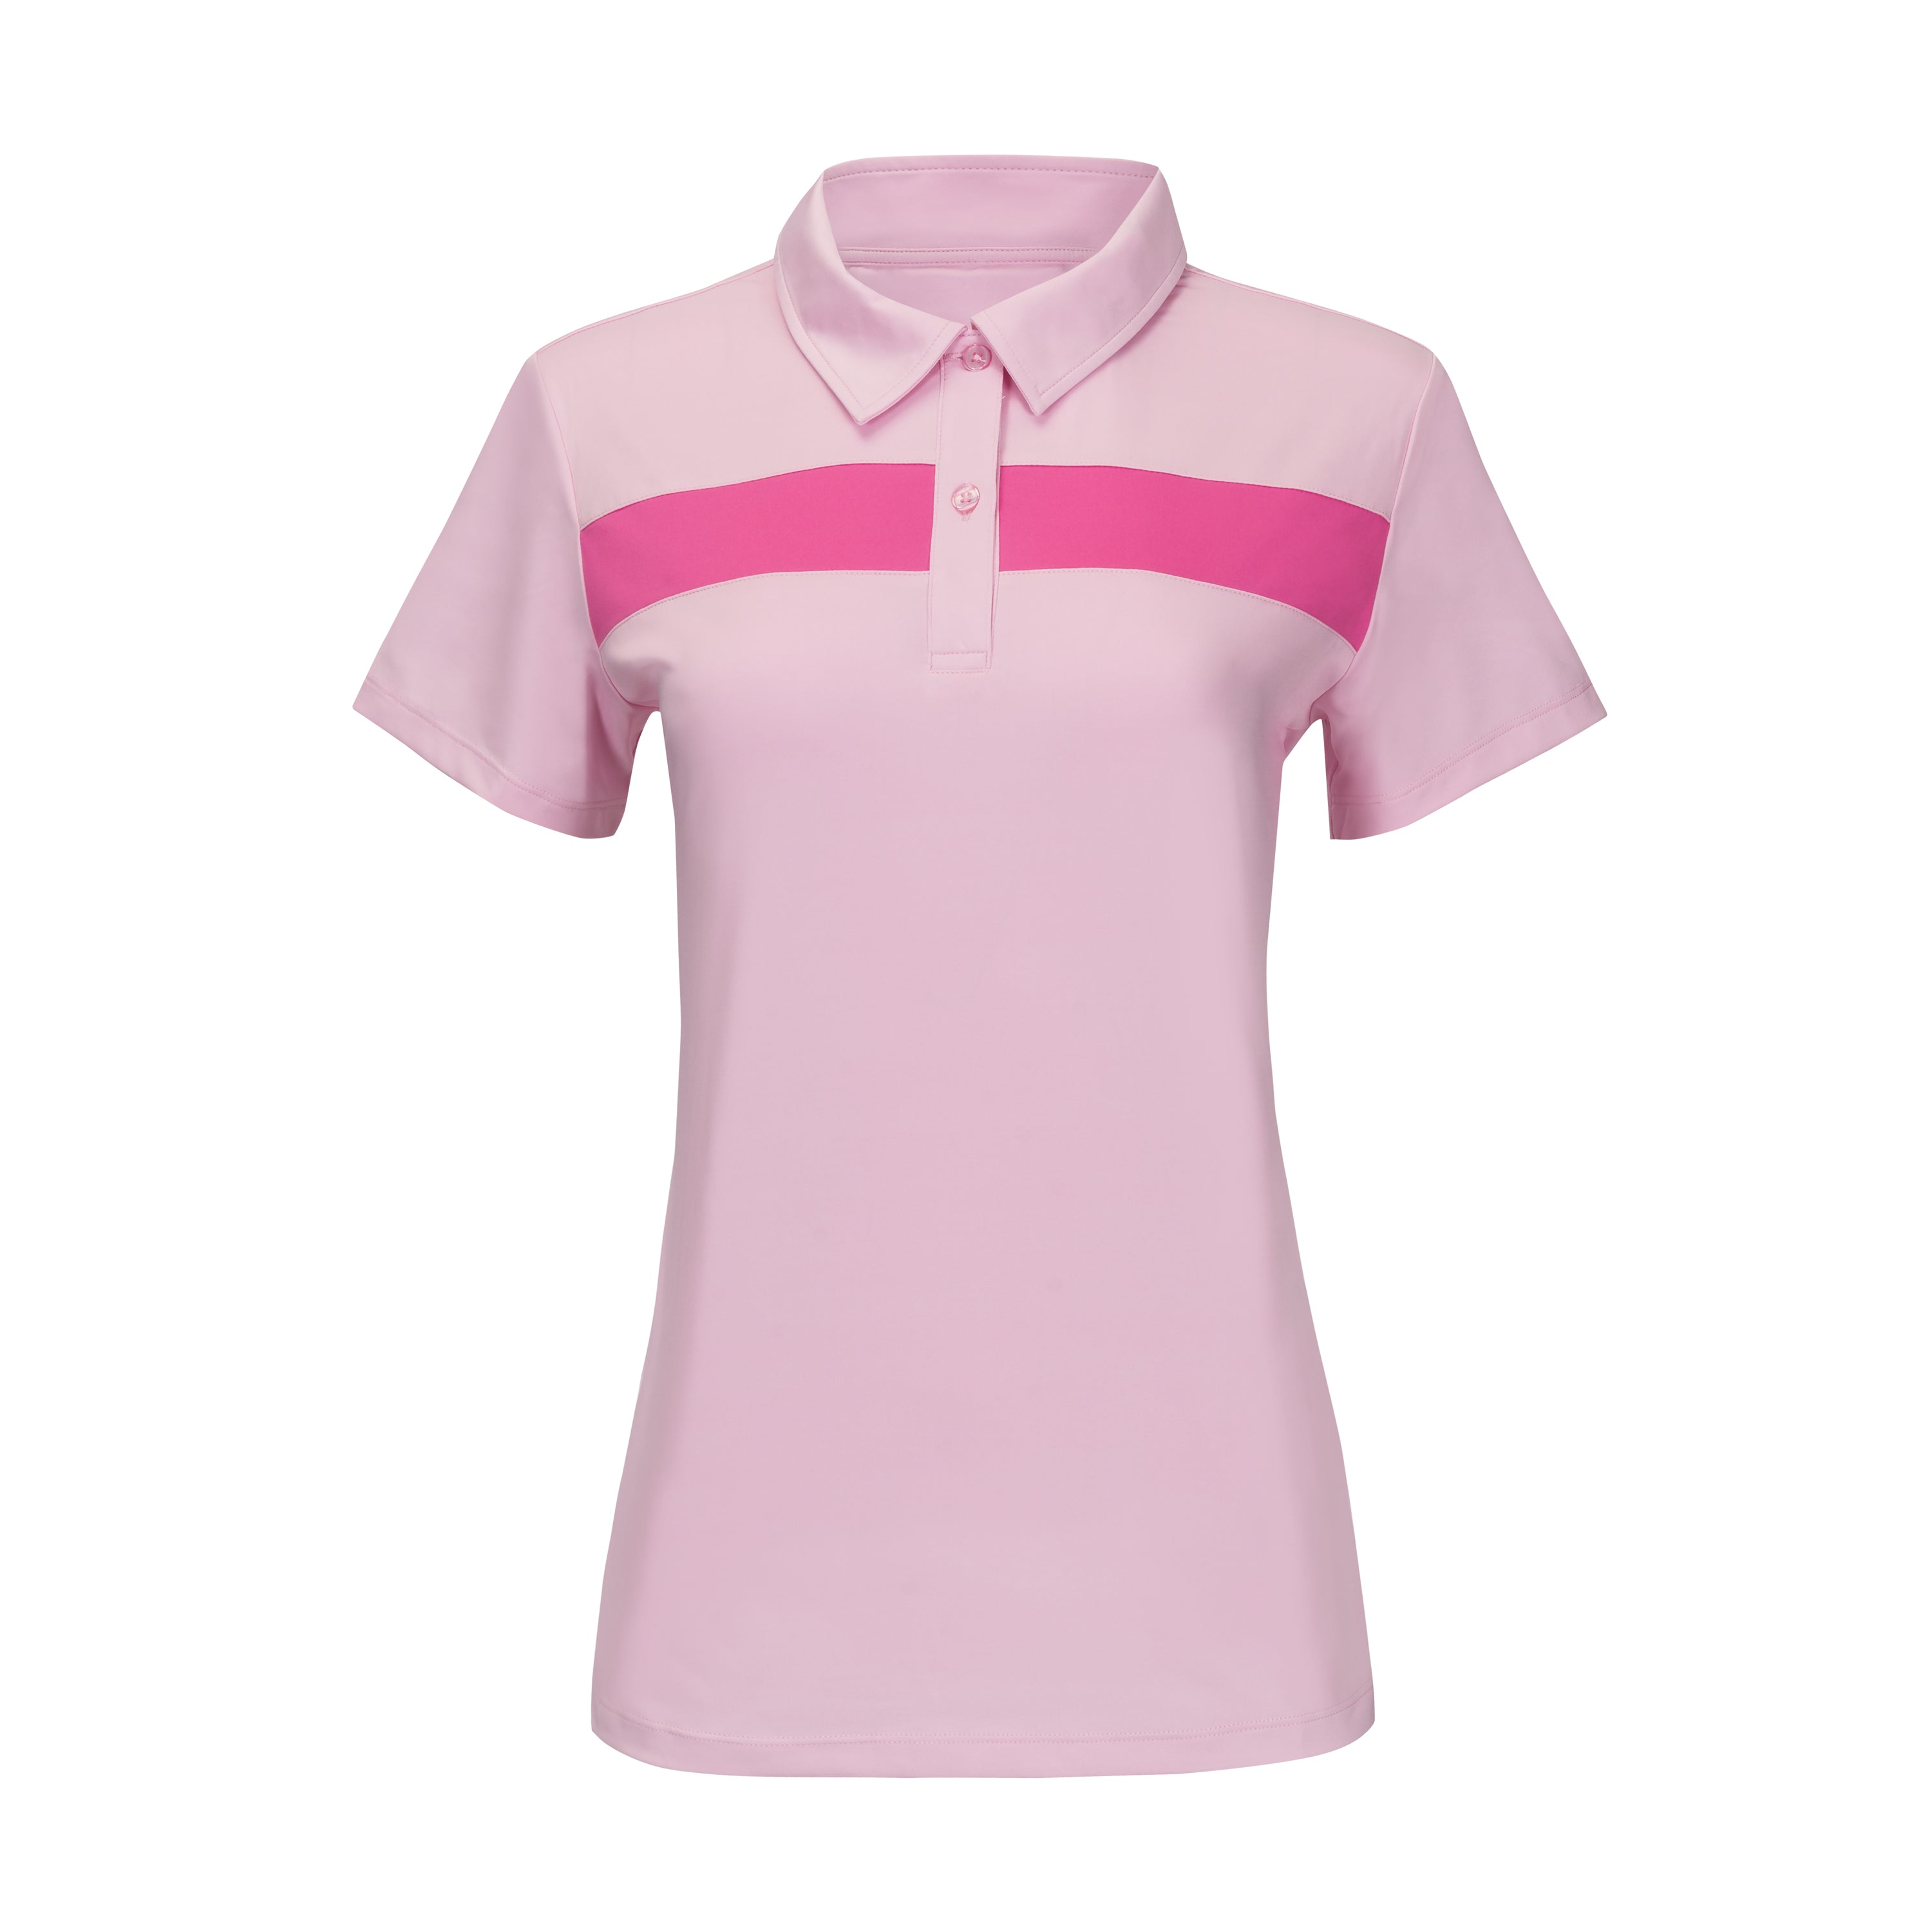 Confident 2.0 Striped Polo - Floral Pink